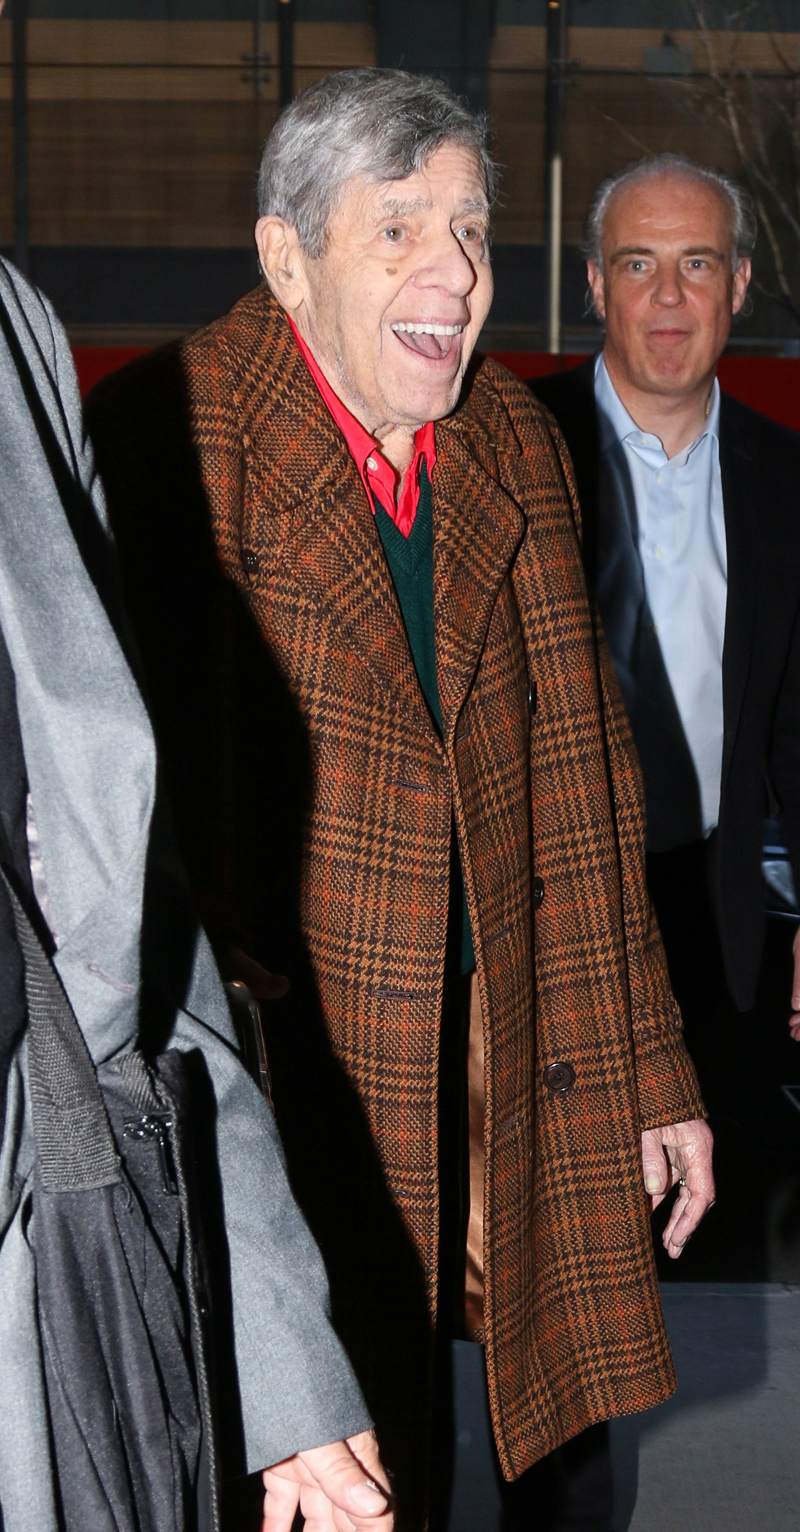 Frail Jerry Lewis Fights At 90 To Push Final Films ...